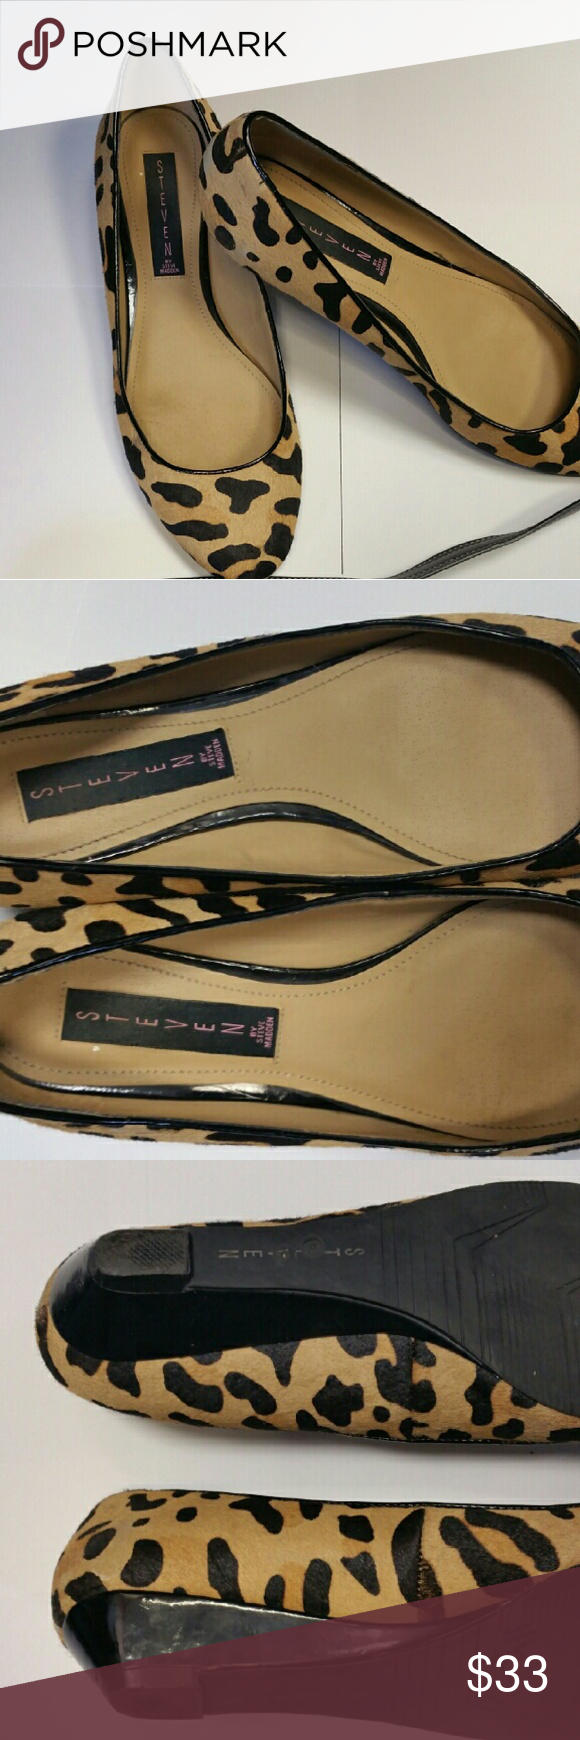 Steve madden flats Steve madden animal print flats with small heel great condition Steve Madden Shoes Flats & Loafers